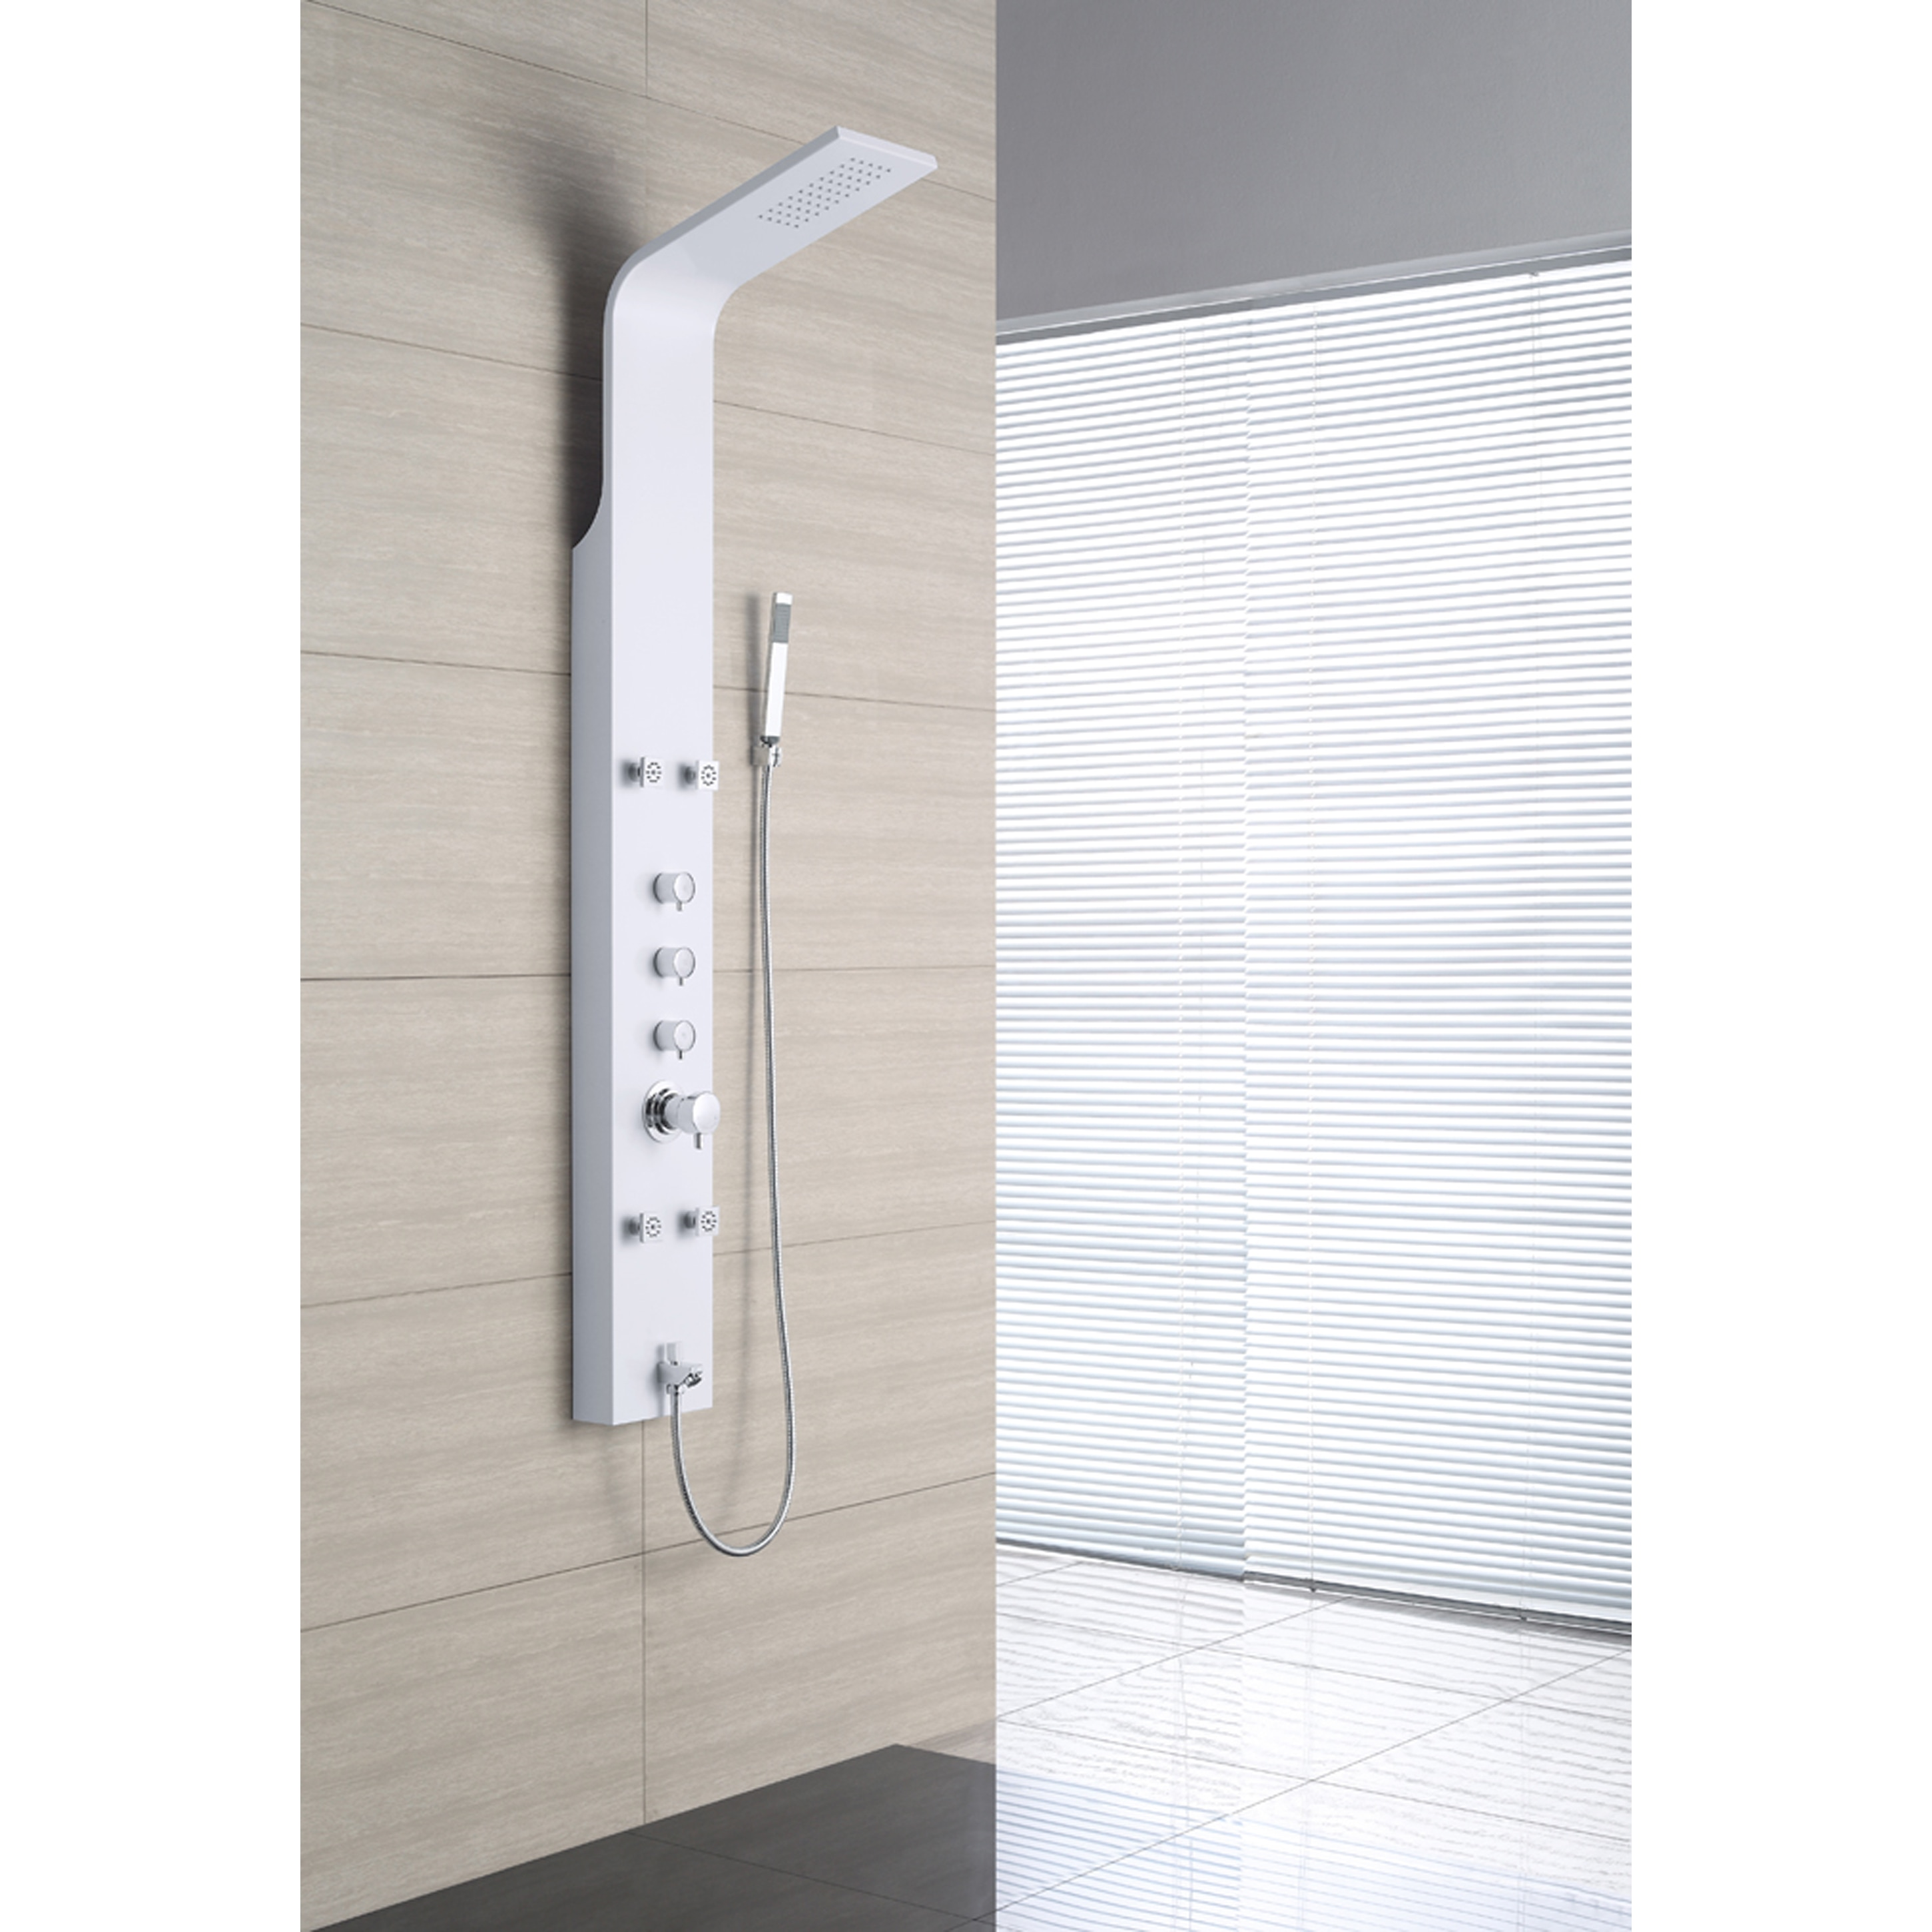 OVE Decors OSC-23 4-Jet Shower Tower System in White - Free ...